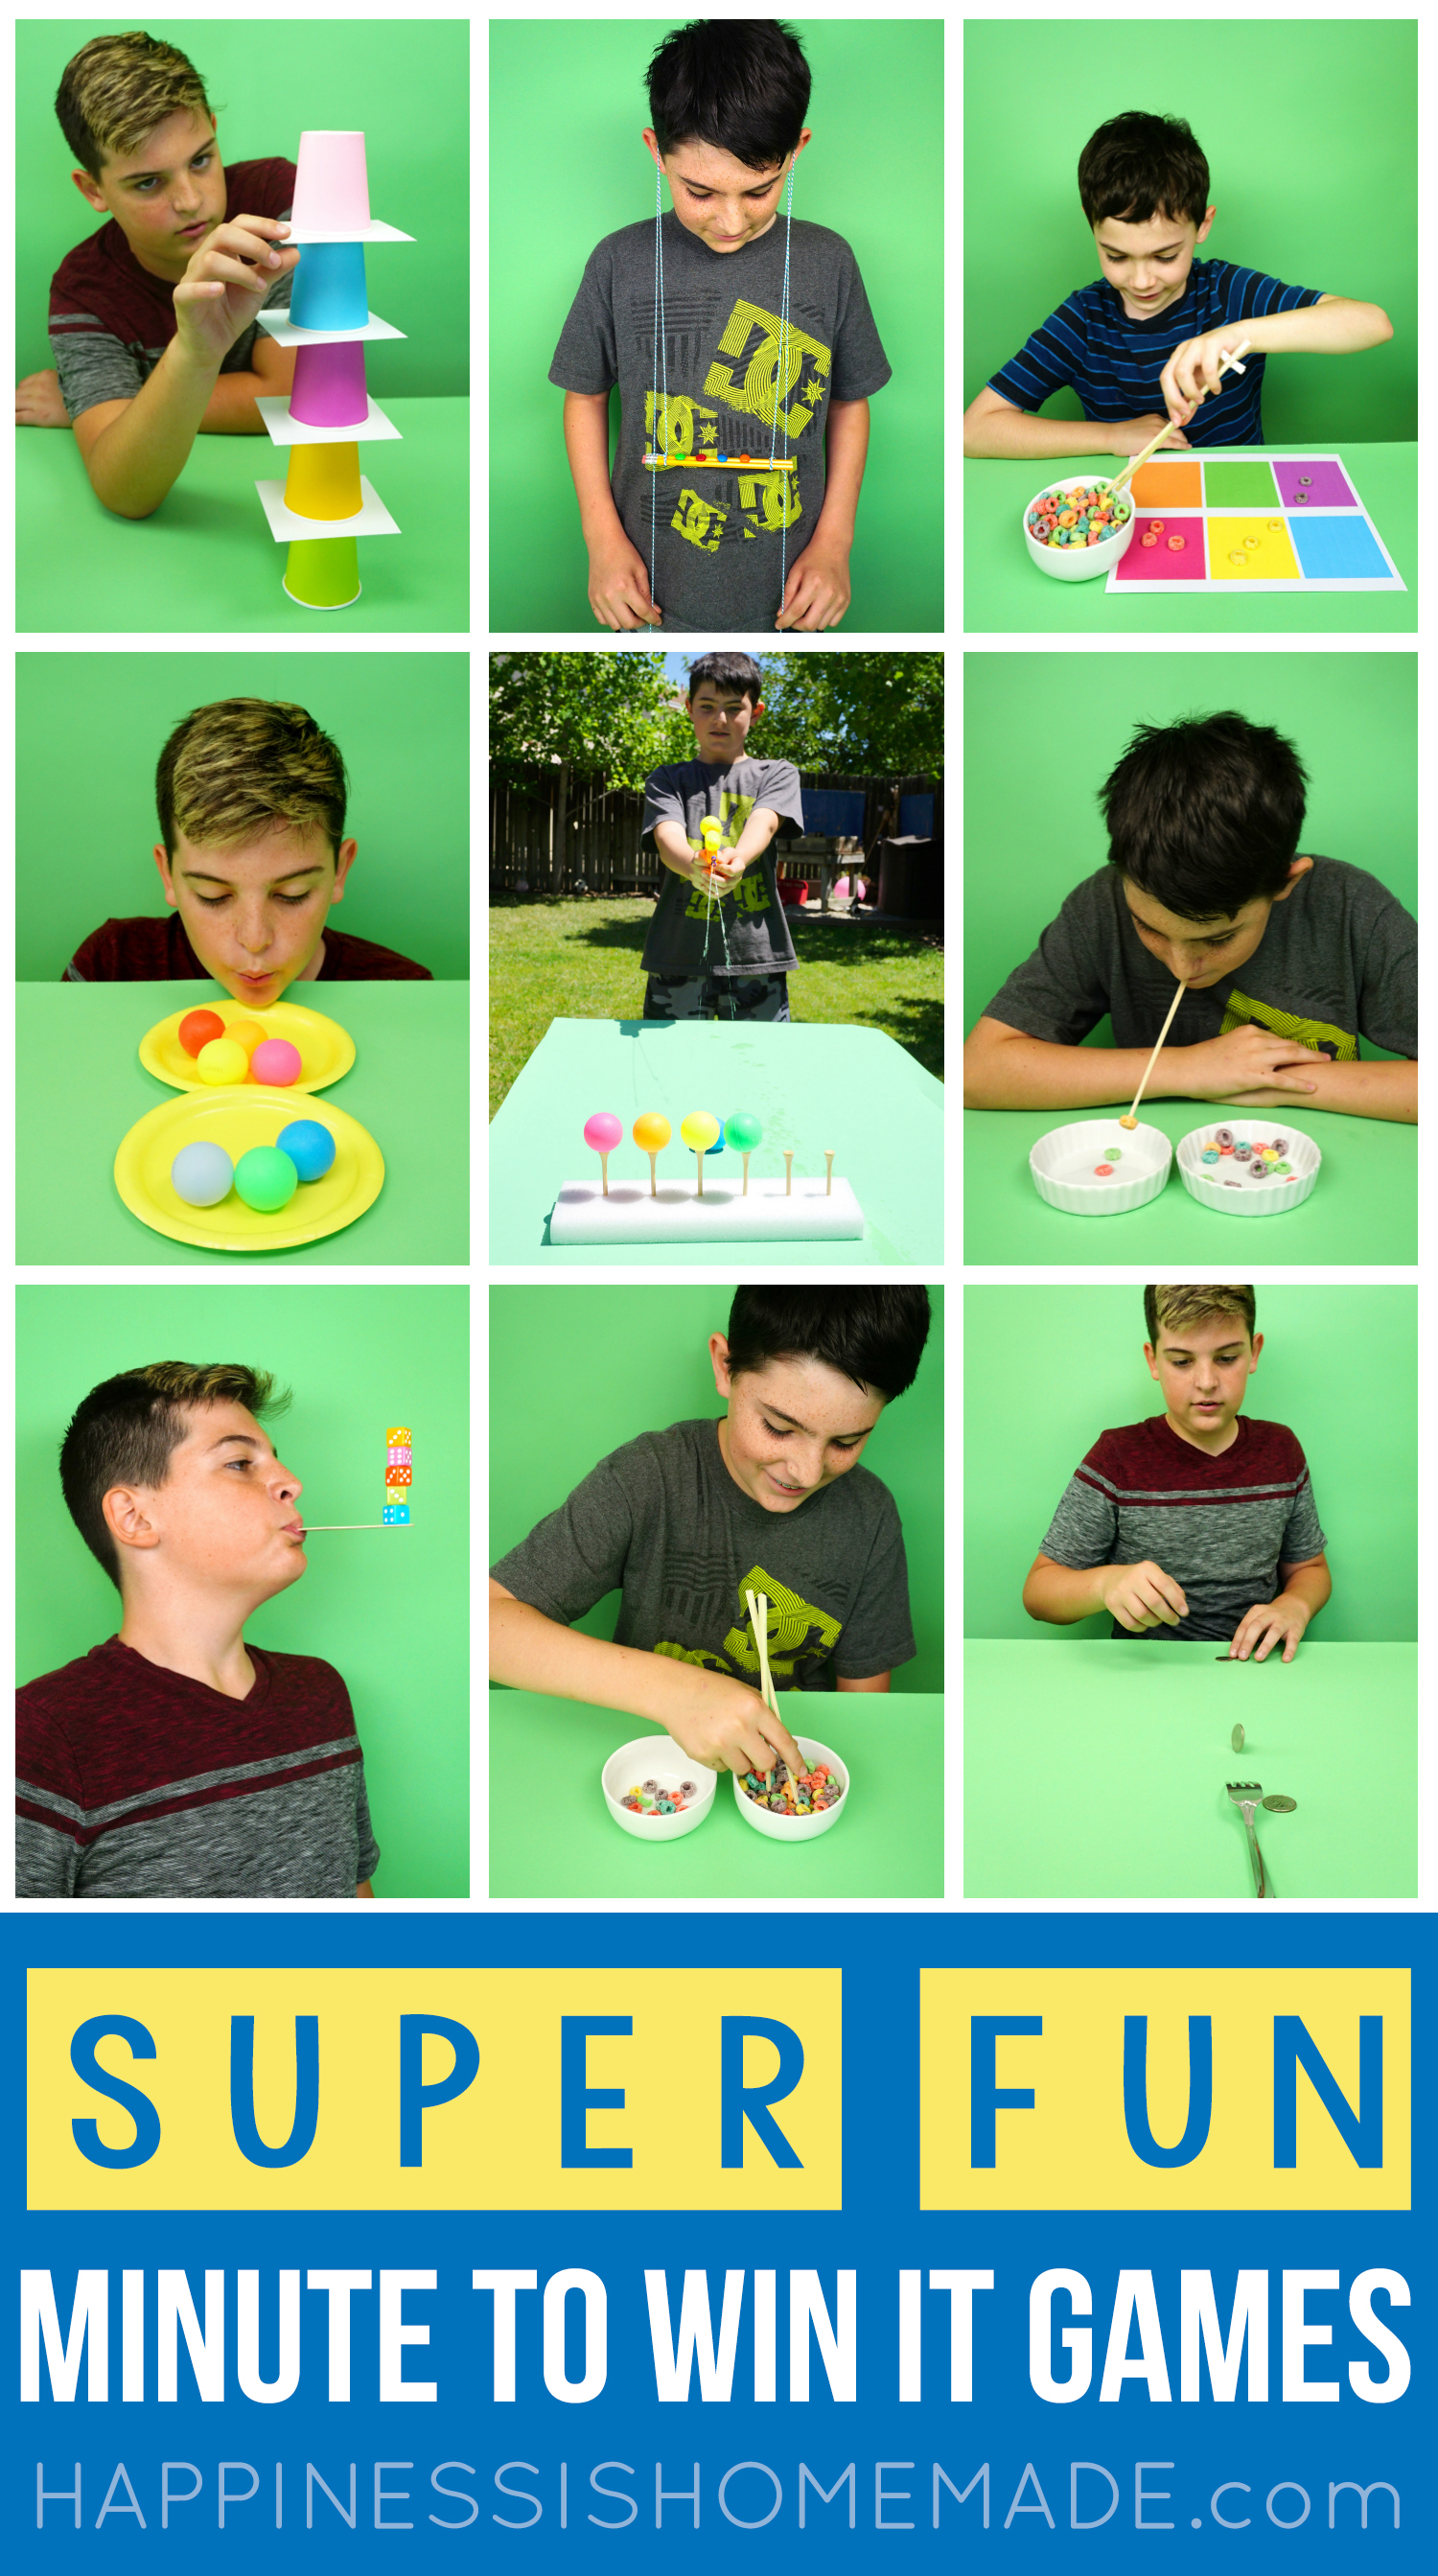 Fun Minute to Win It Games for Kids, Adults, Groups, and More